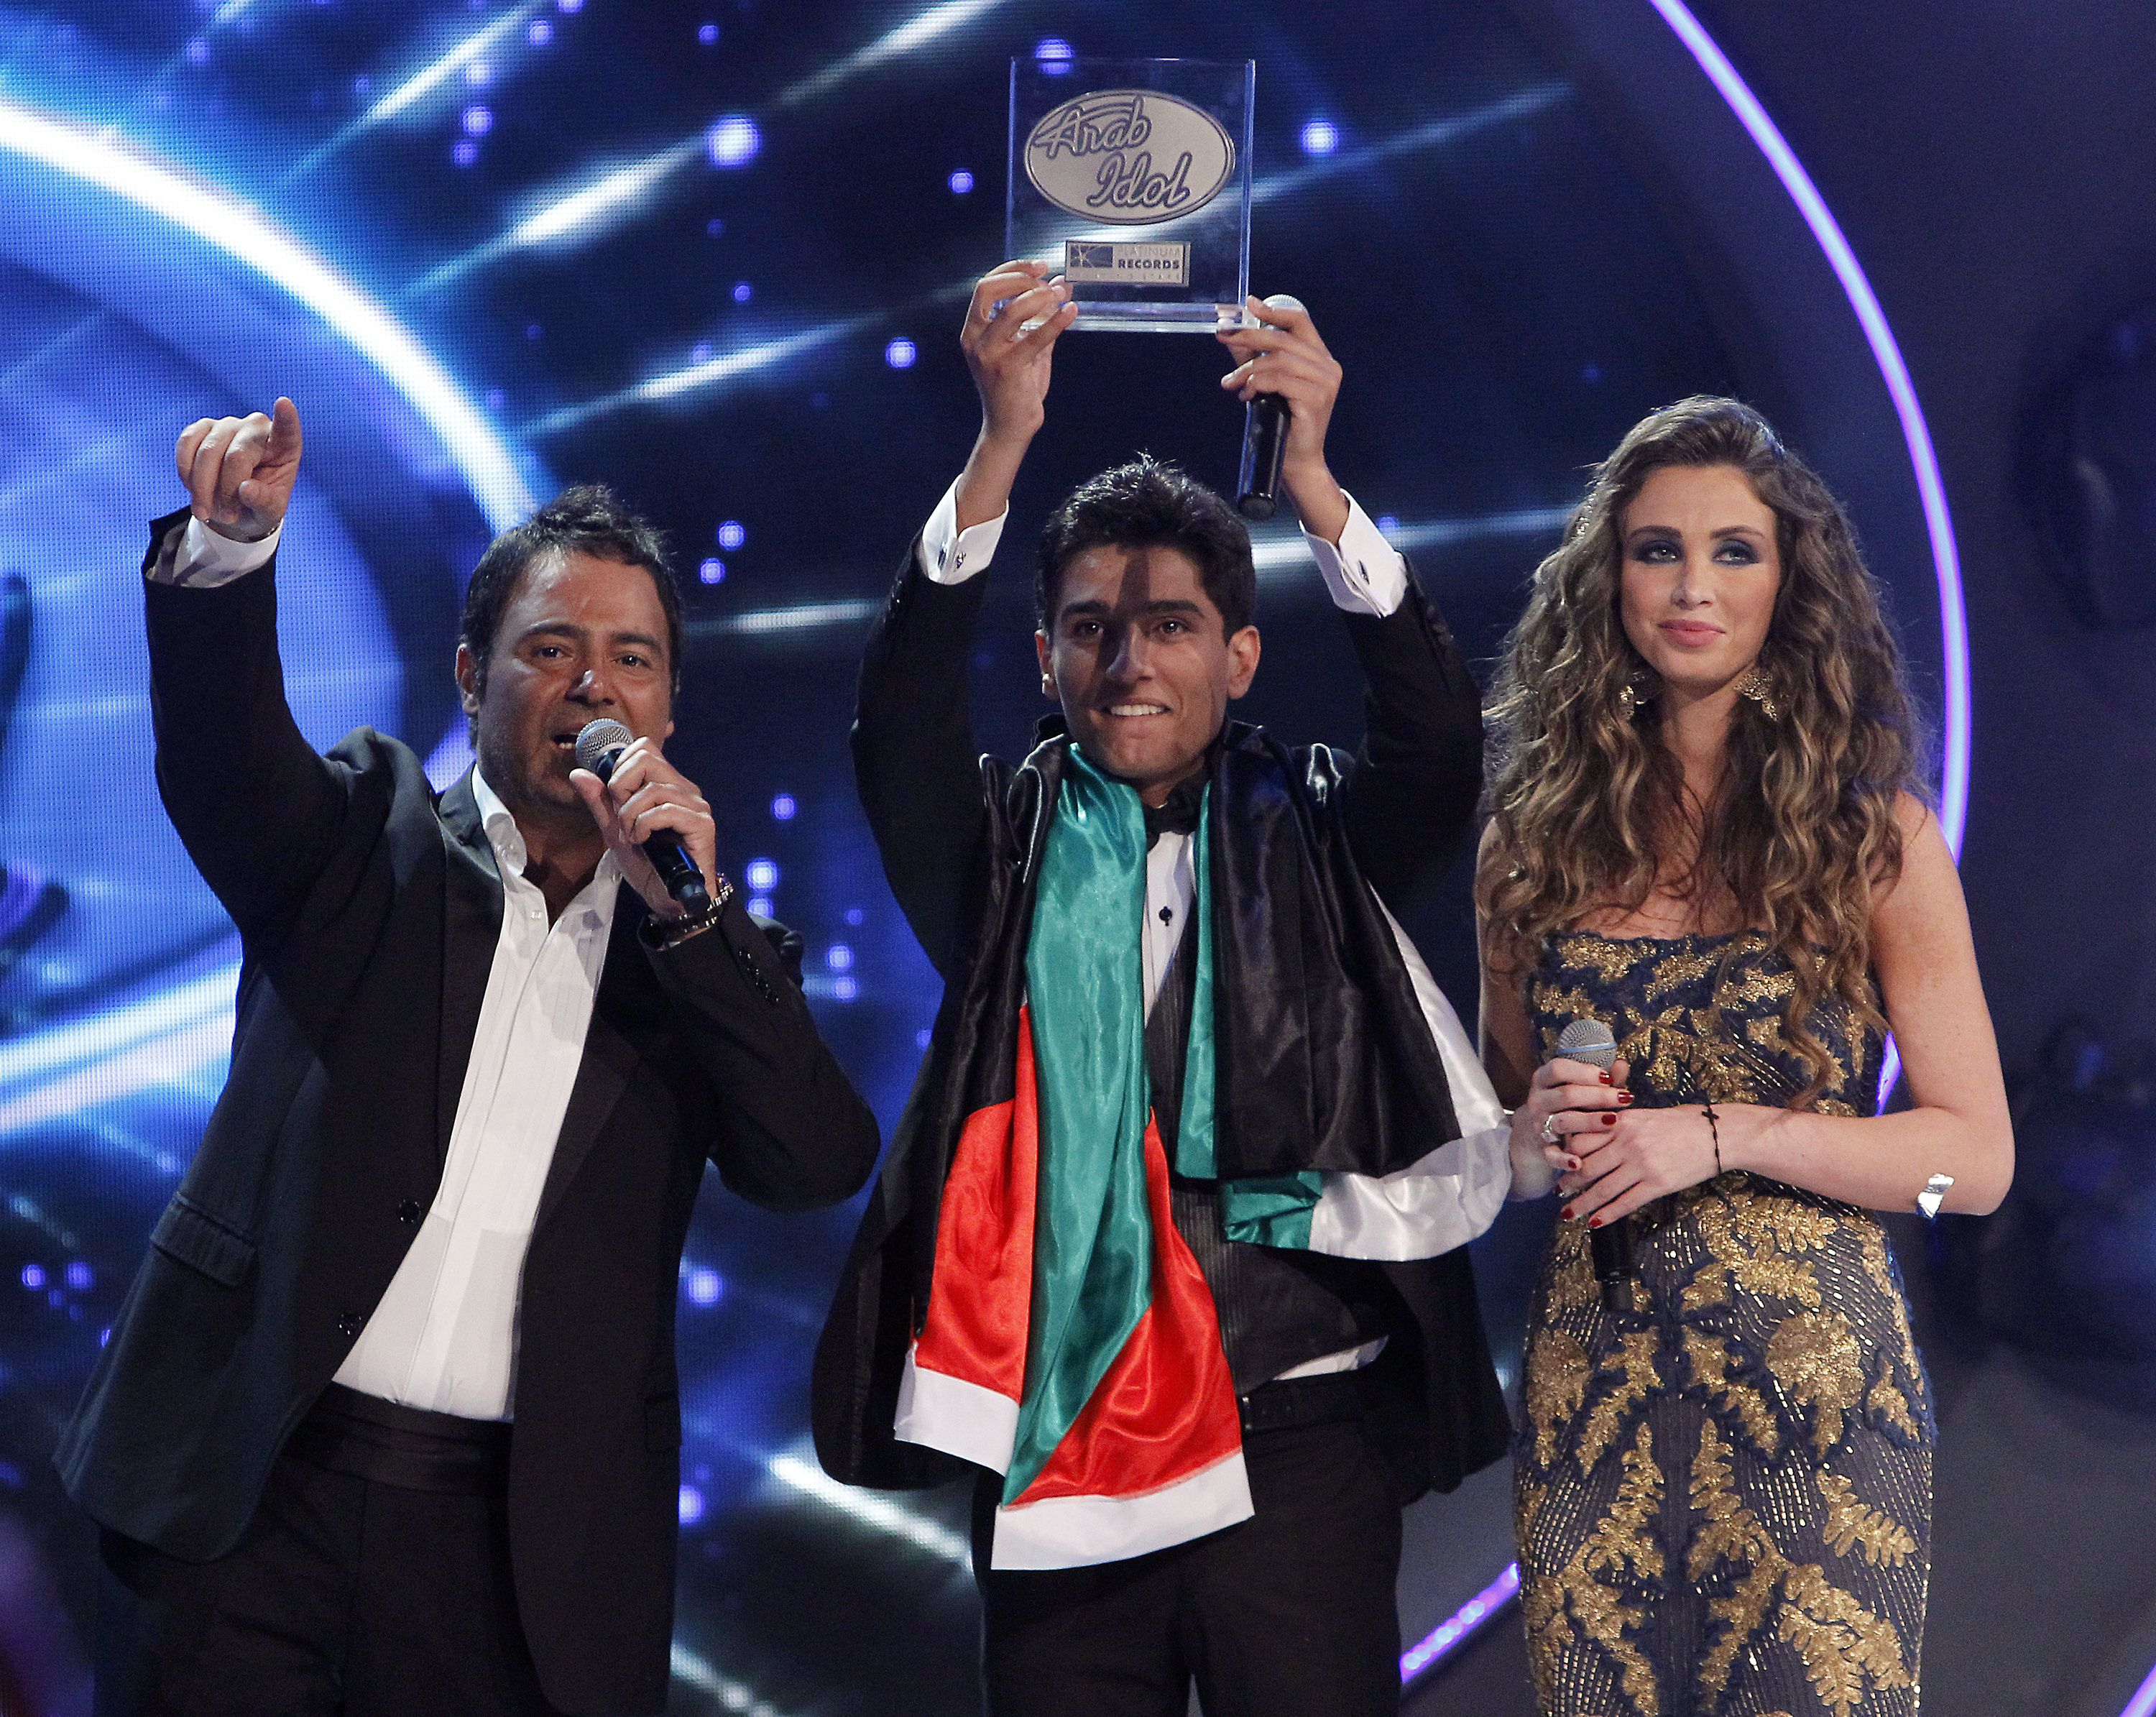 Palestinian contestant Mohammed Assaf (C) raises his trophy next to Lebanese singer Assi al-Hallani (L) and host Annabella Hilal after winning the Arab Idol singing contest in Zouk Mosbeh, north of the Lebanese capital Beirut, early on 23 June (AFP PHOTO/ANWAR AMRO)